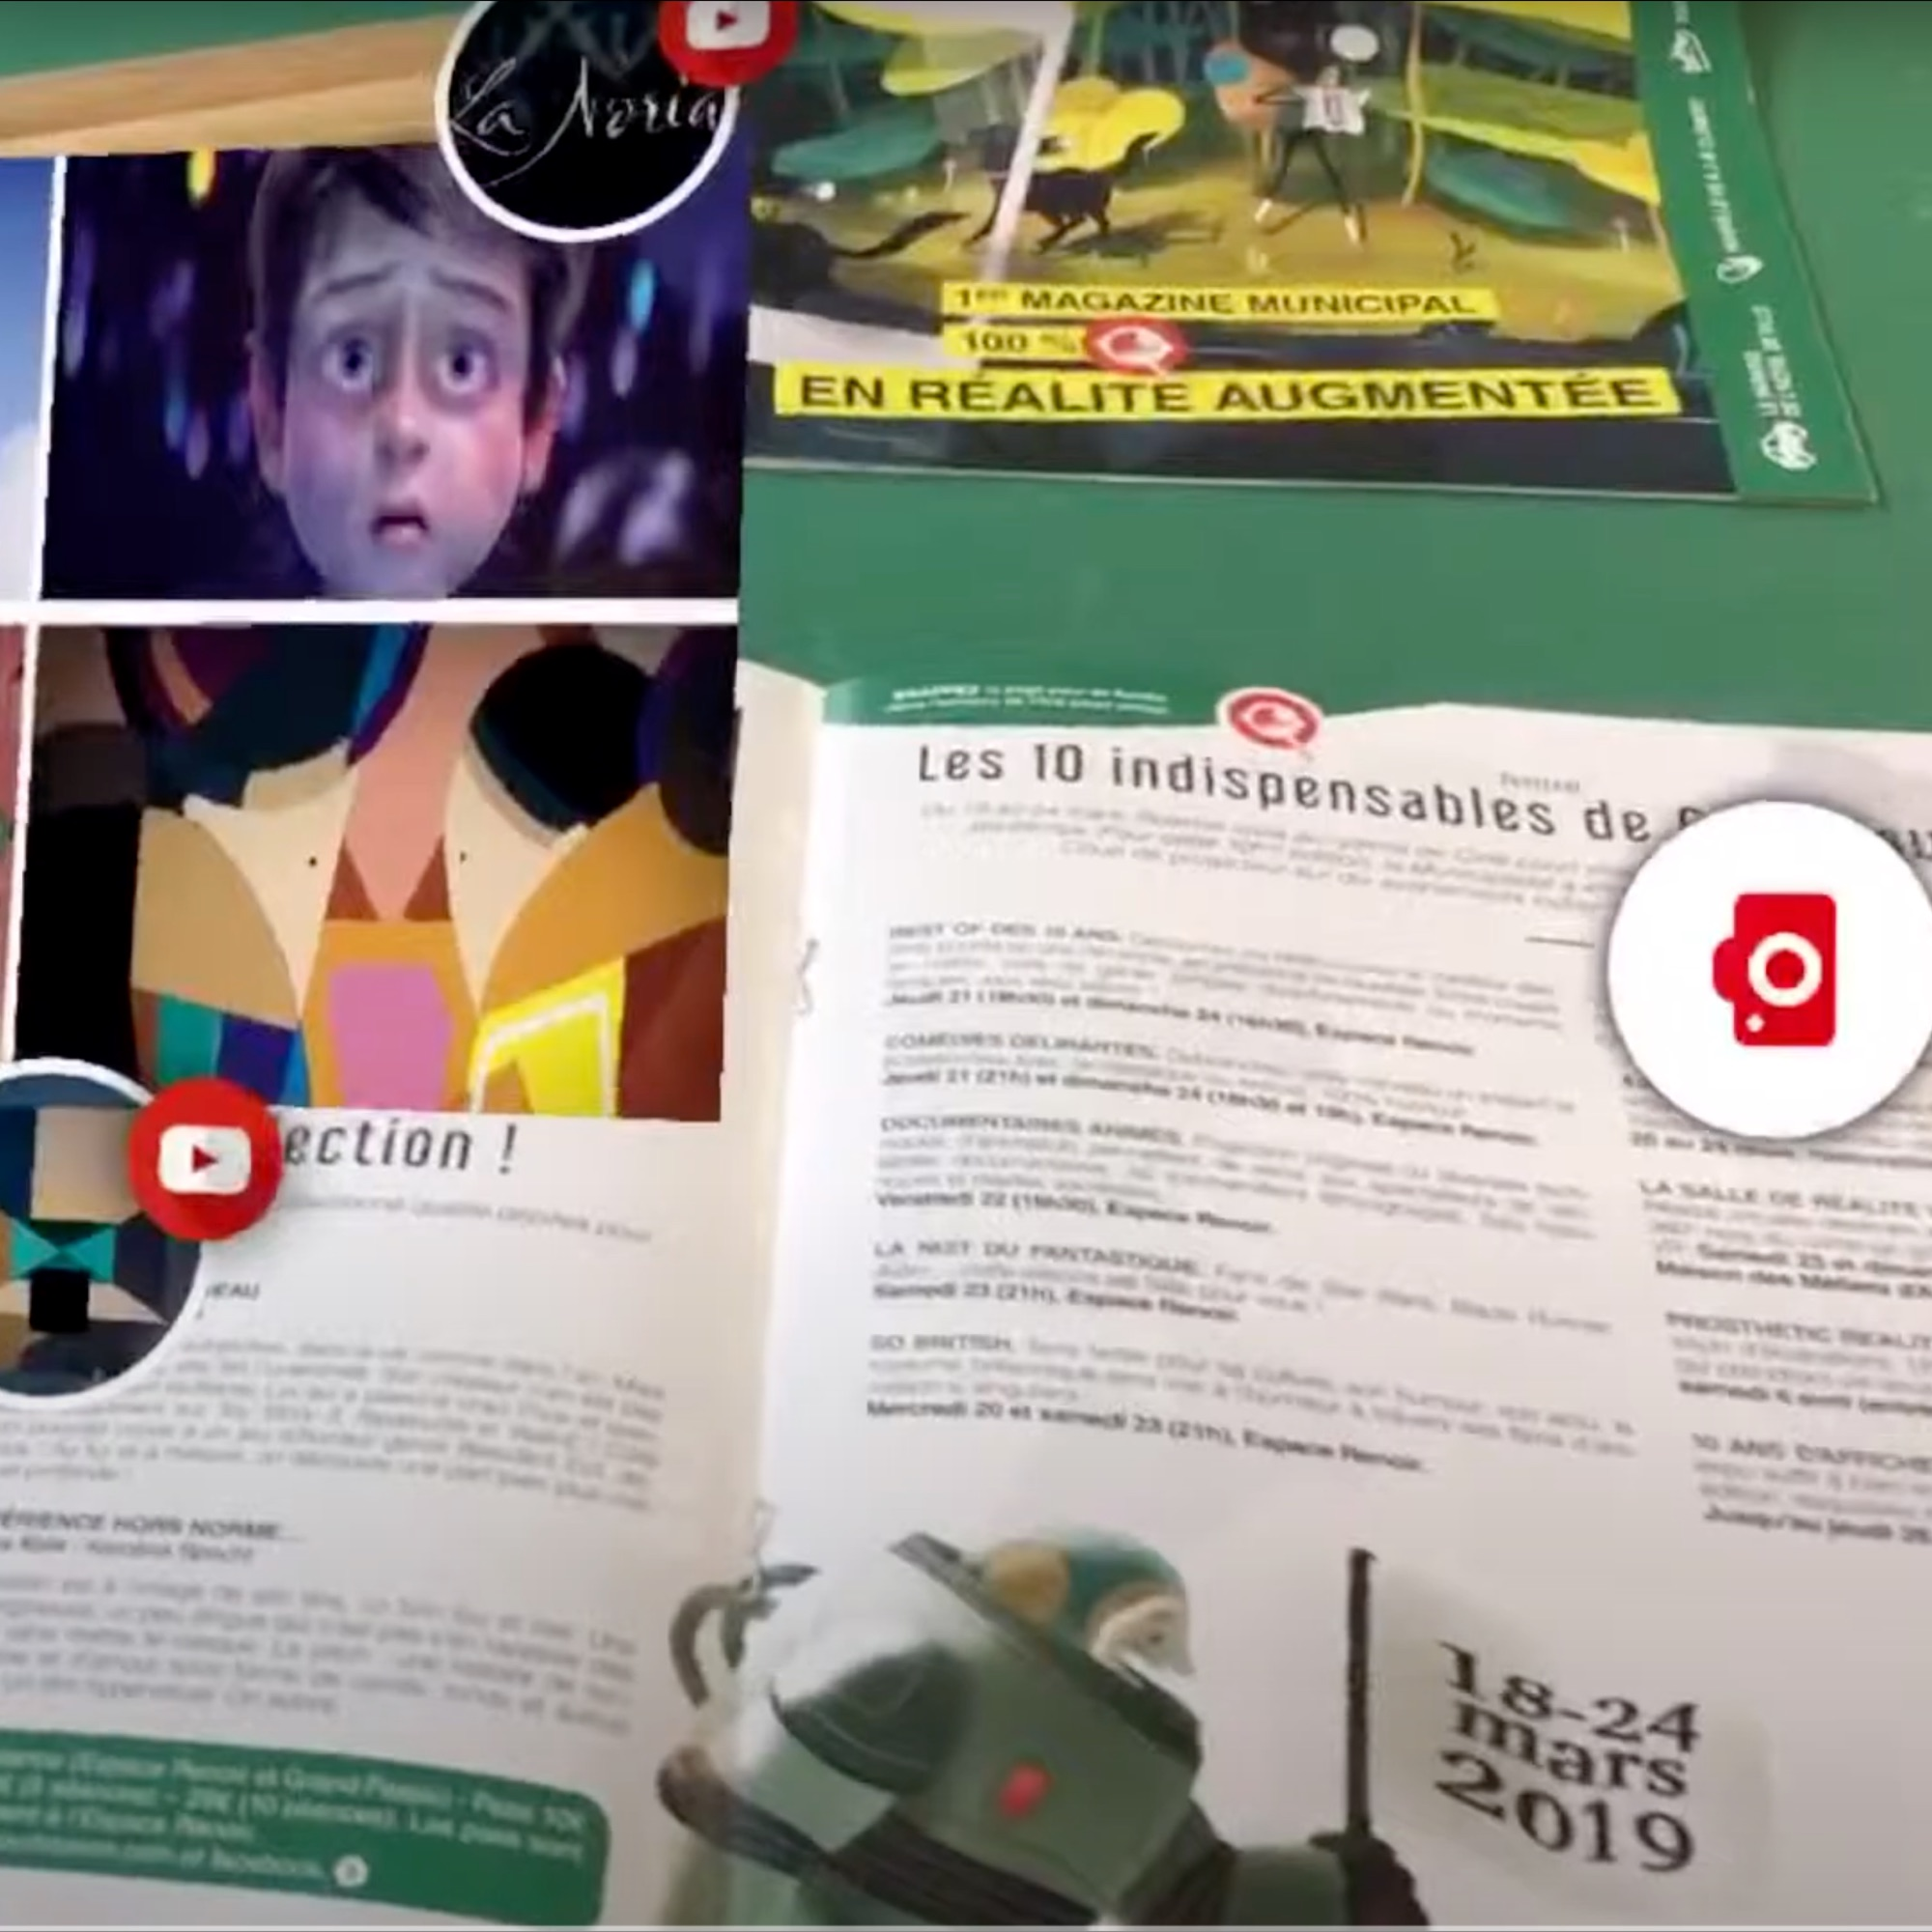 ARGOplay ex-SnapPress the native Augmented Reality solution for the public sector, available for free to end users on iOS and Android smartphones, preview of a magazine of the Agglomeration of Roanne and augmentation on a smartphone screen